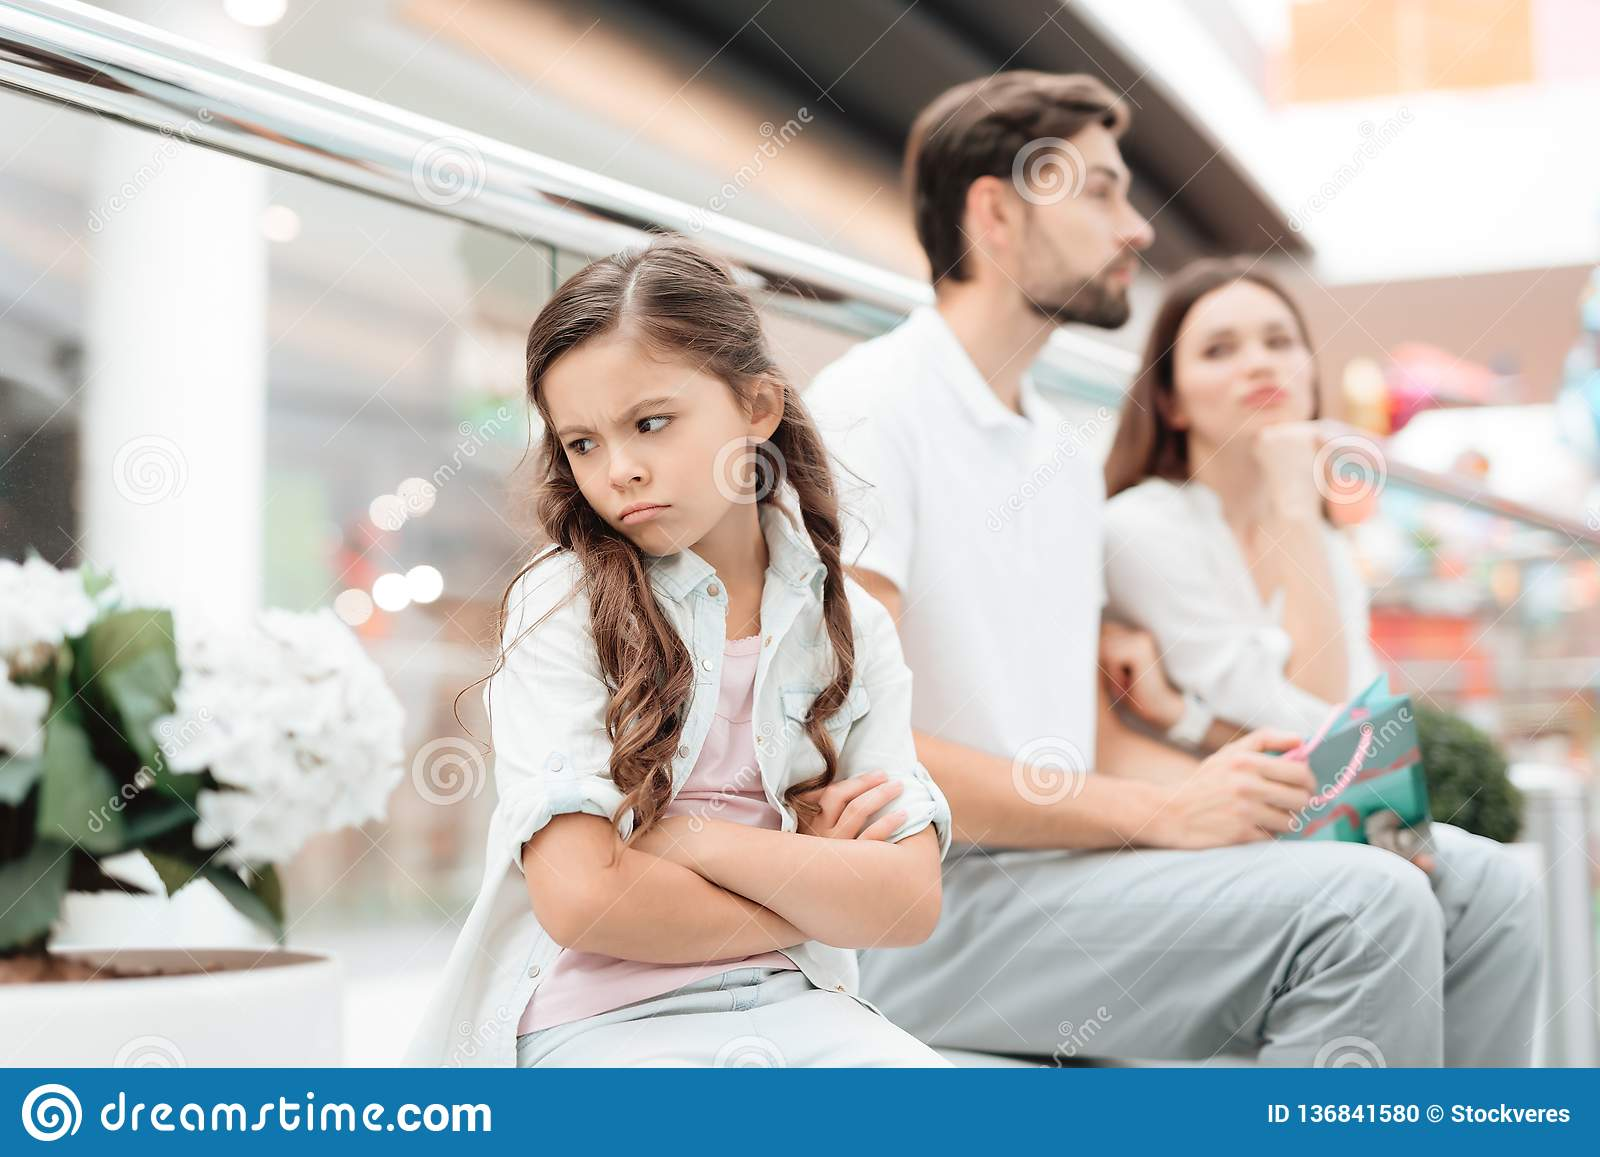 Family, father, mother and daughter are sitting on bench in shopping mall. Girl is angry and sad.